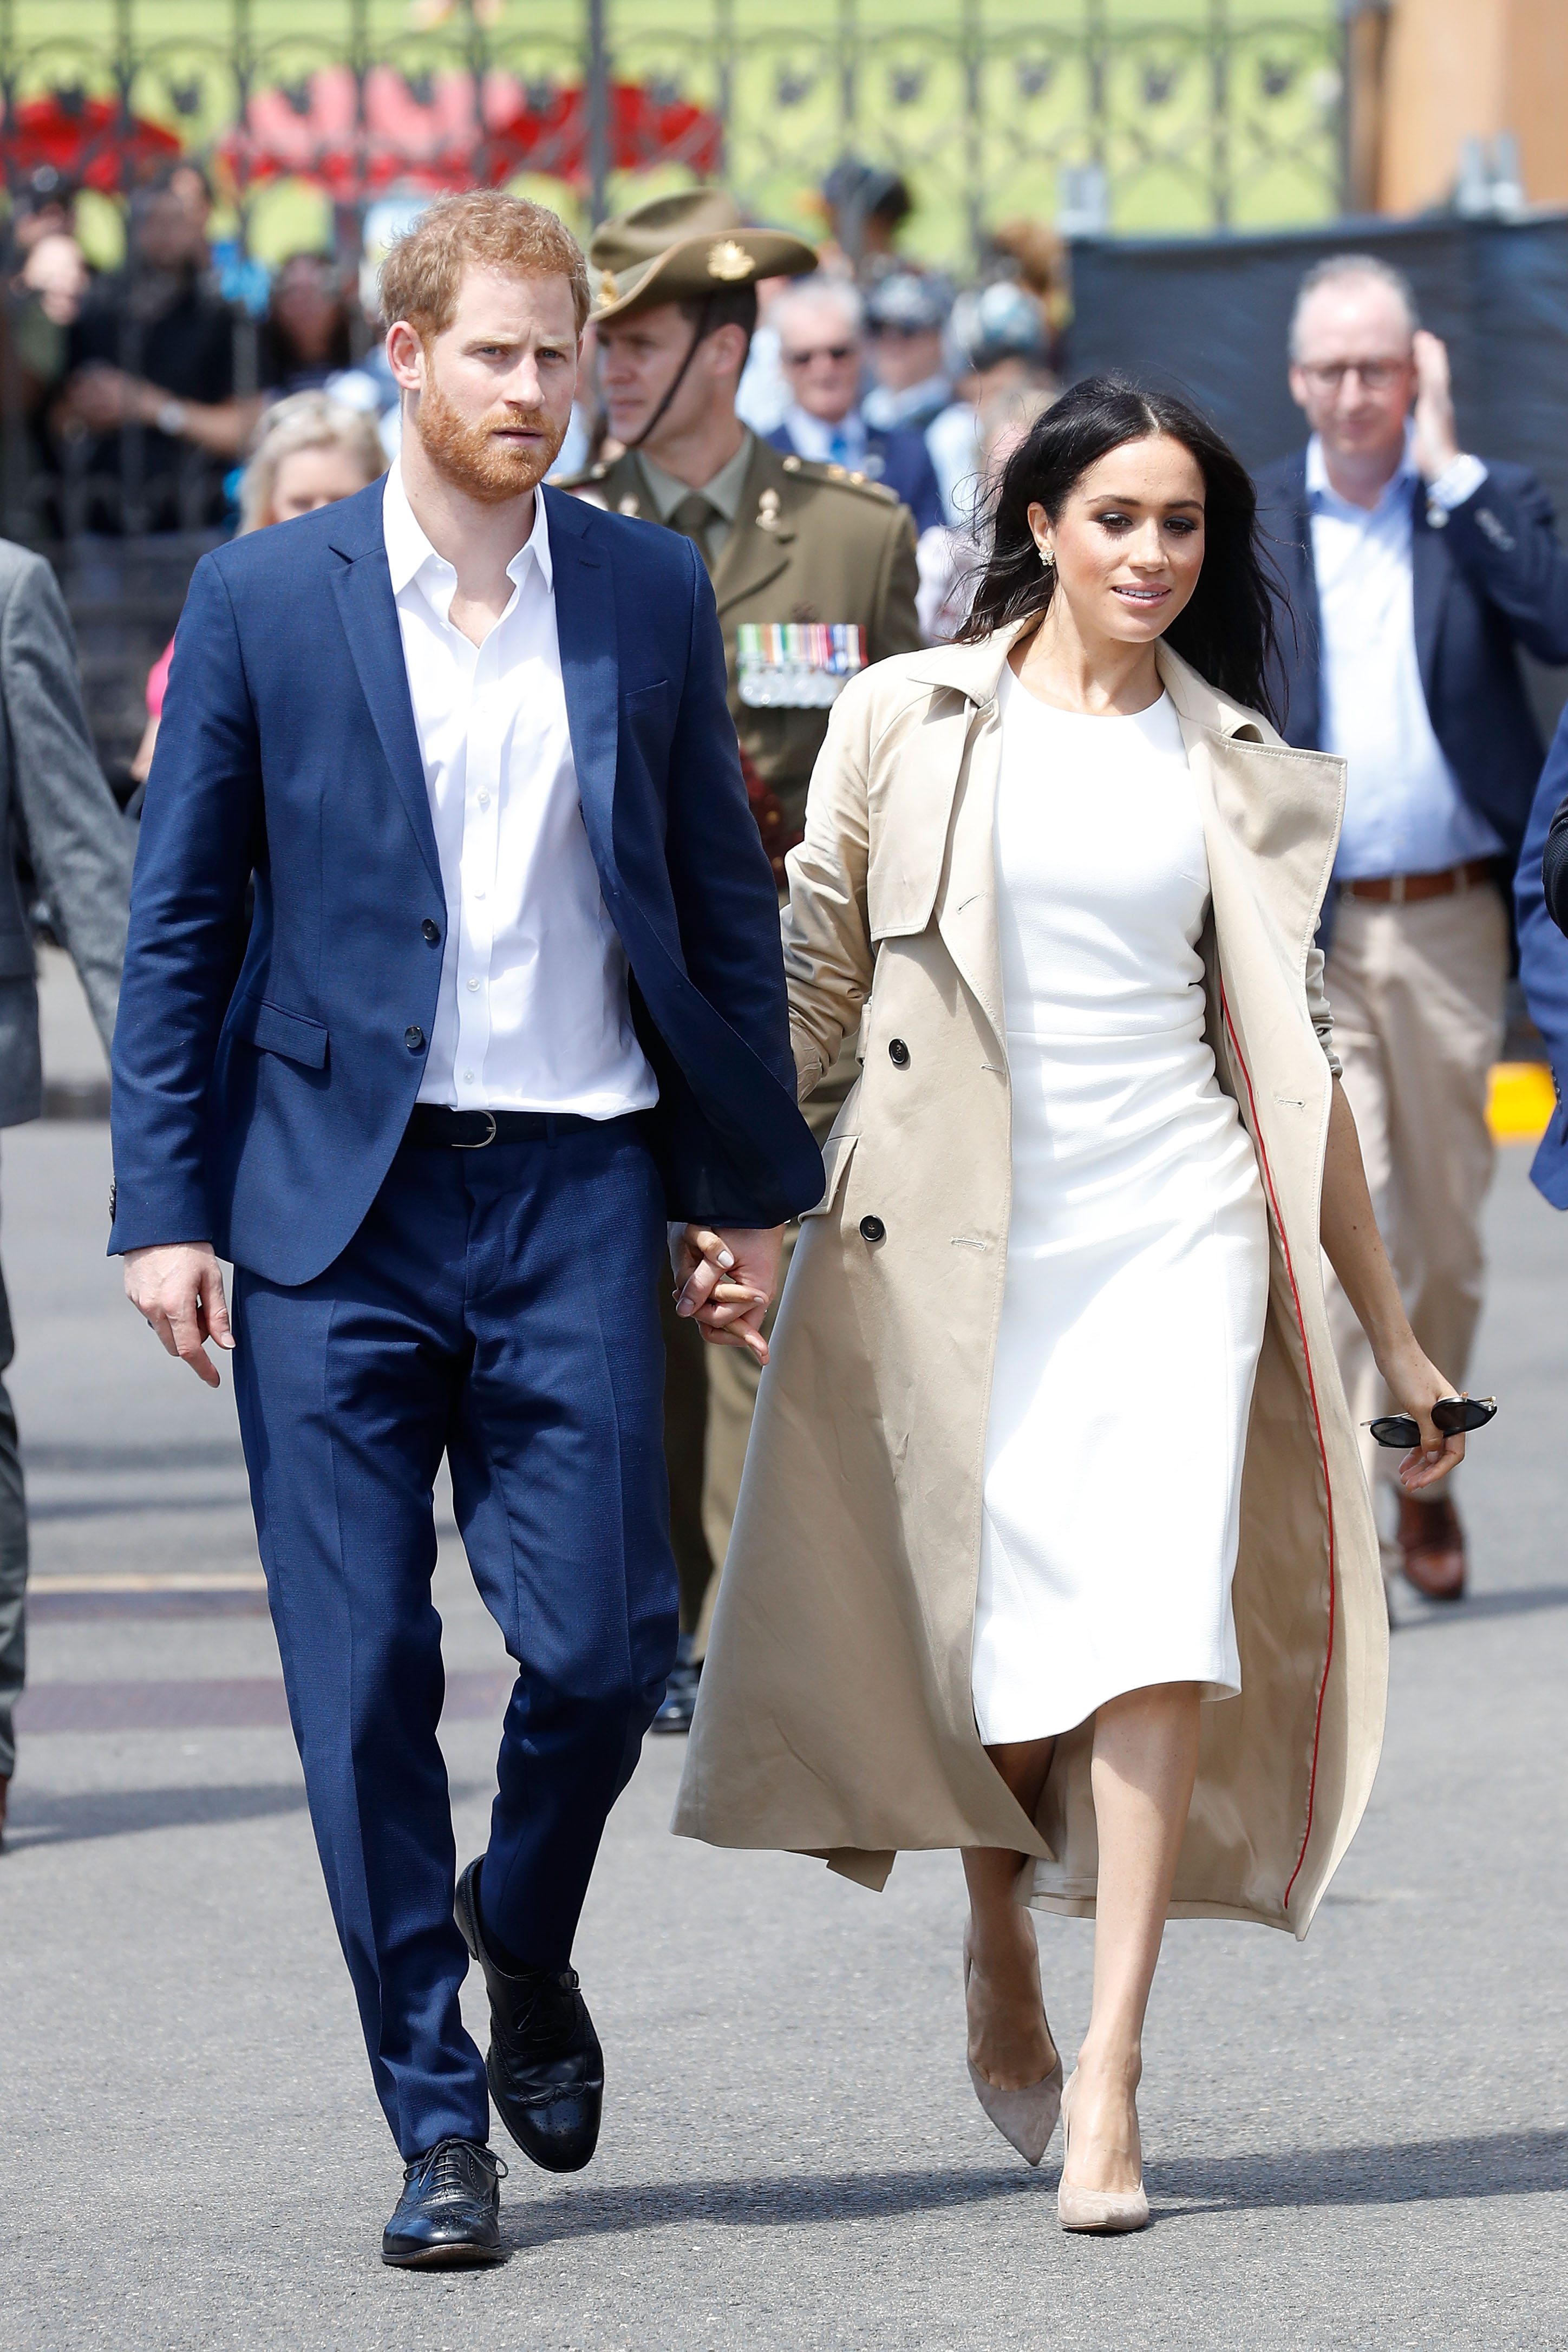 The announcement of Meghan's pregnany came after months of speculation, which went into overdrive on Friday when she wore a loose-fitting coat to Princess Eugenie's wedding on Friday (Getty Images)